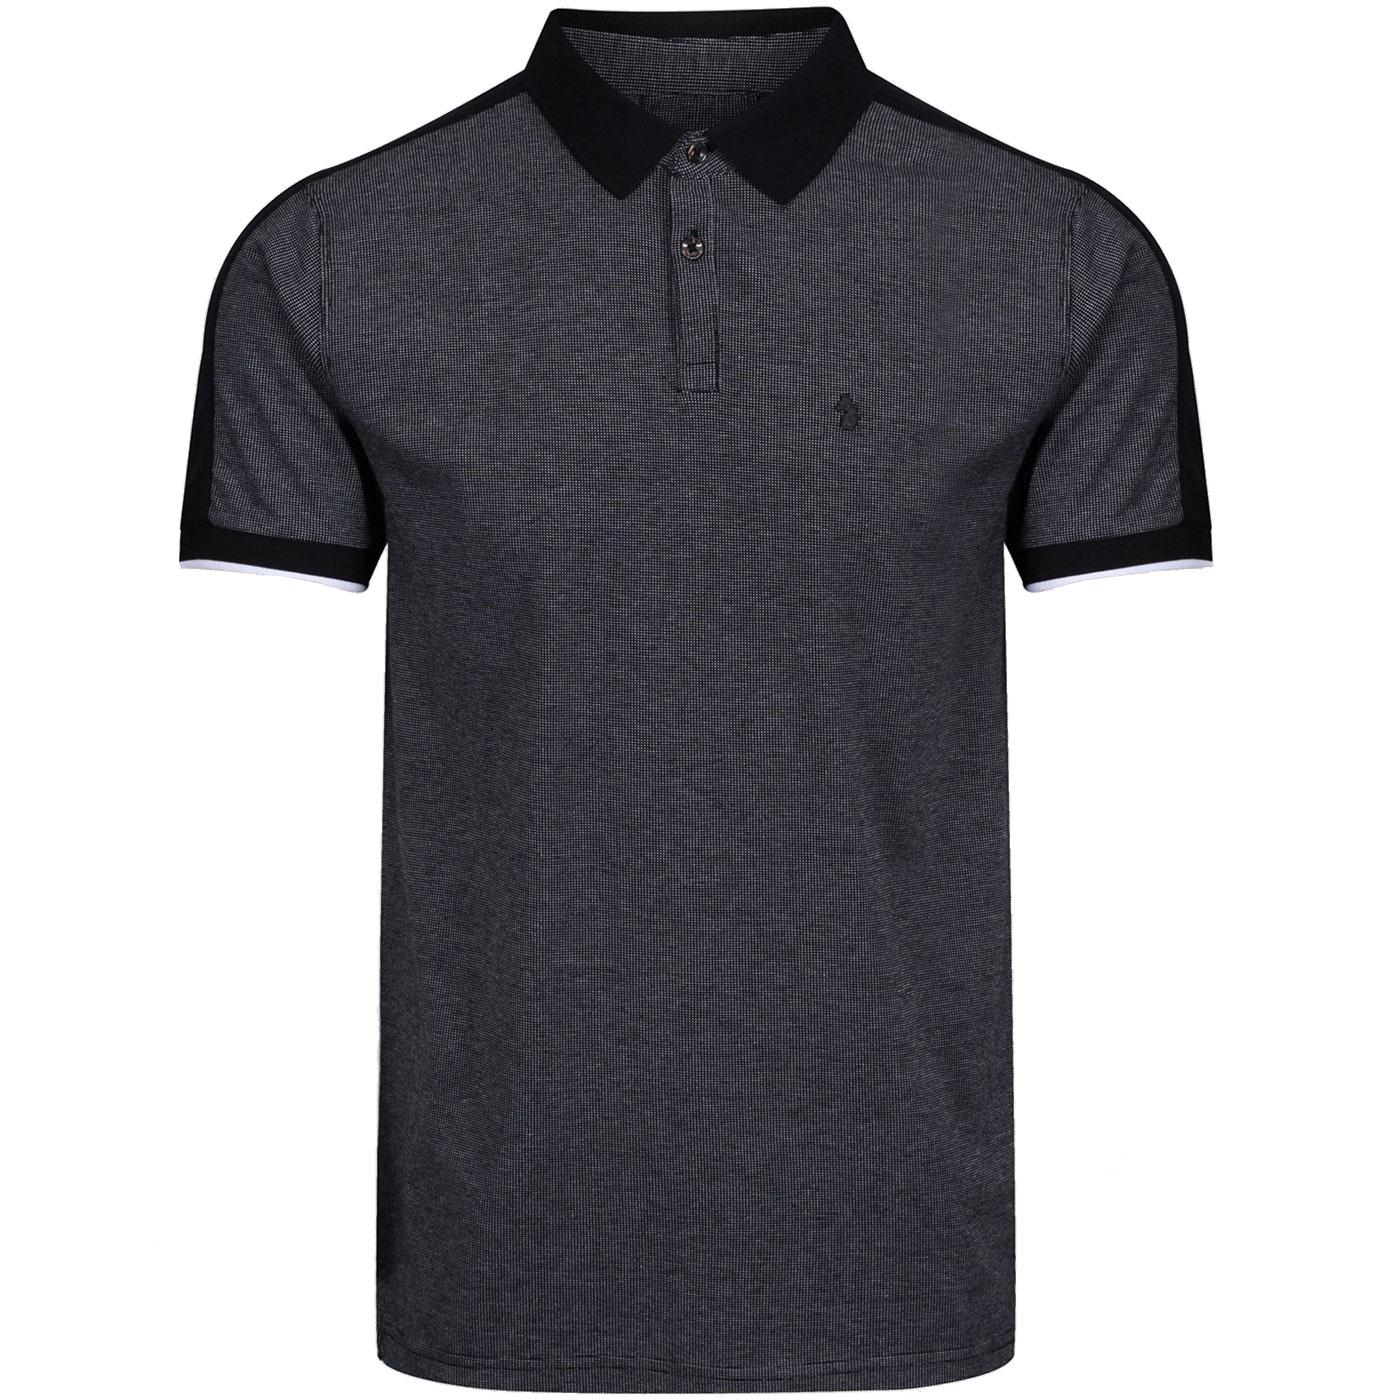 Toker LUKE Mens Retro Birdseye Tonic Polo Shirt JB